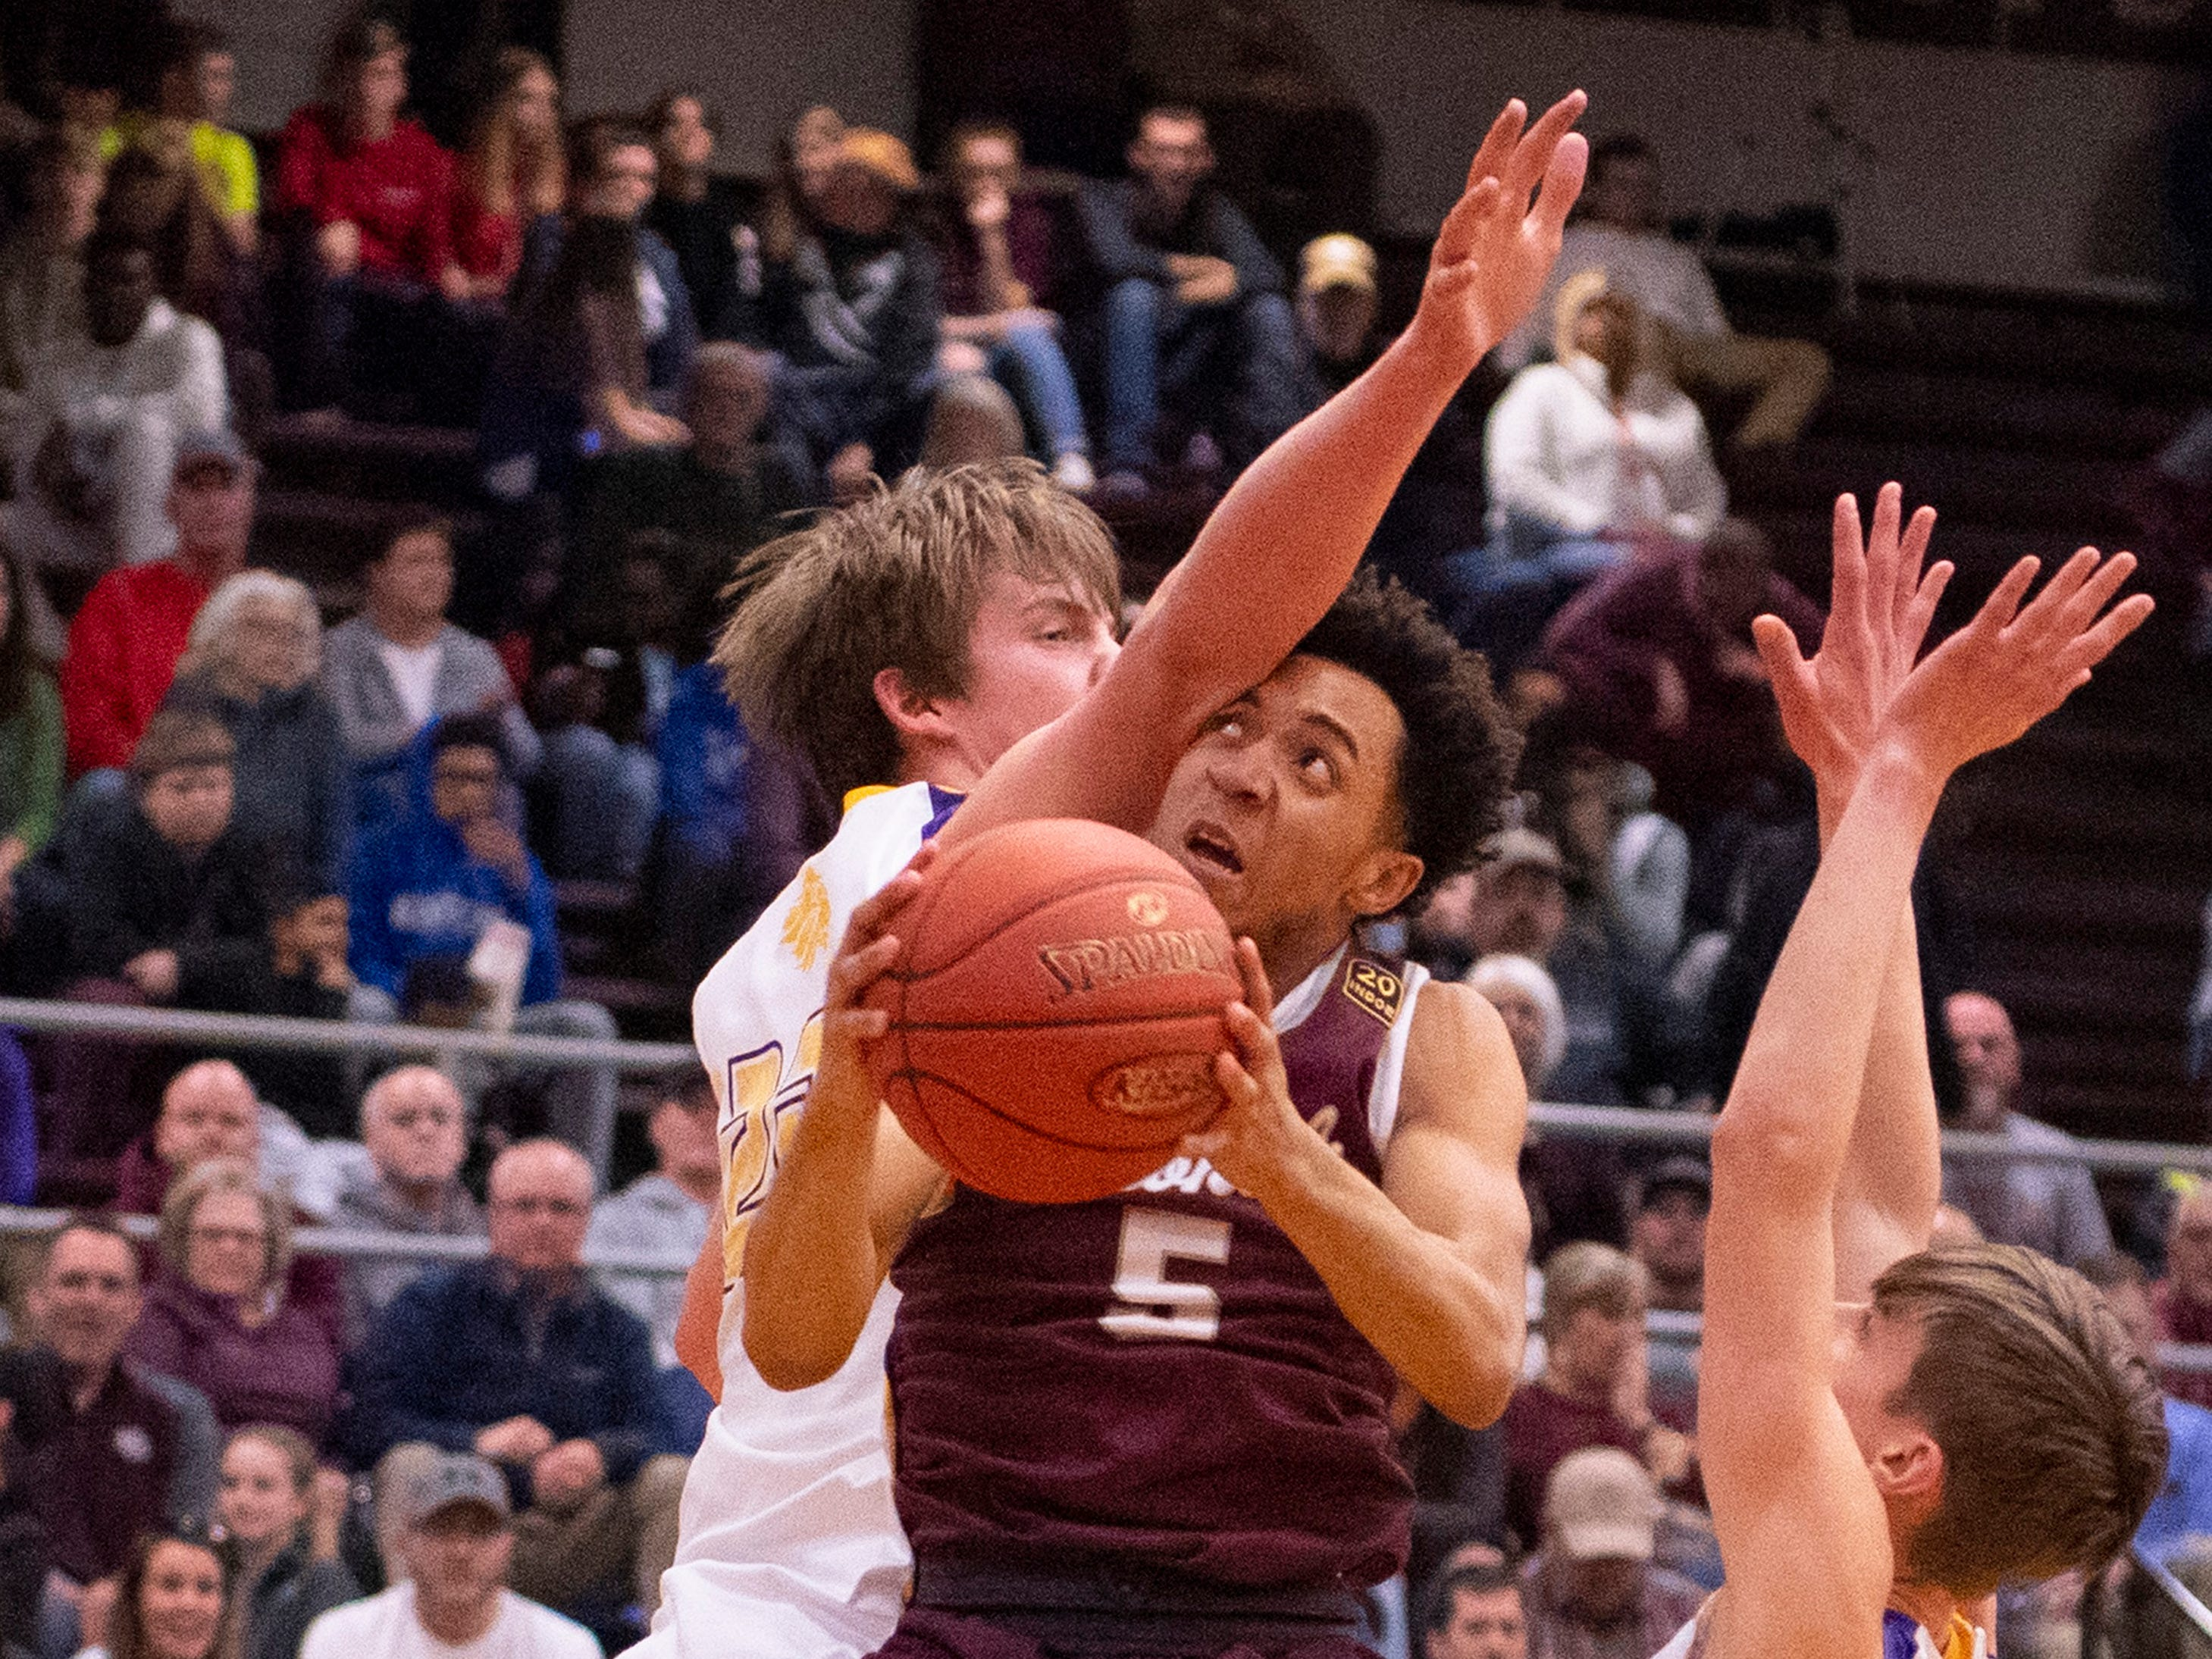 Henderson County's Edmund Brooks (5) is hit by a Lyon County player, but still made the shot during the Boys Second Region Tournament at Madisonville-North Hopkins High School Tuesday night.